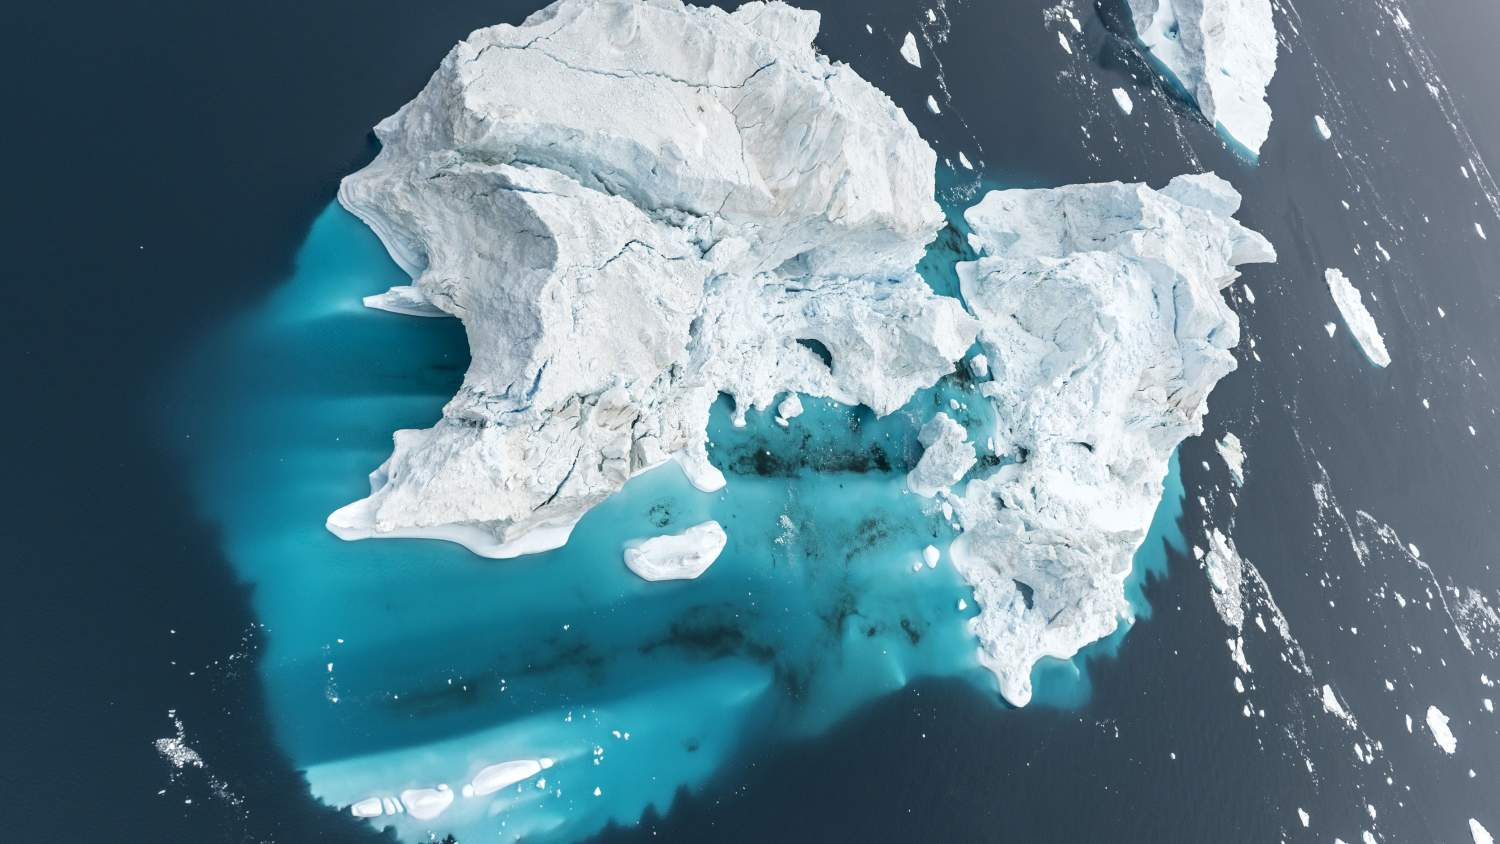 View of an iceburg